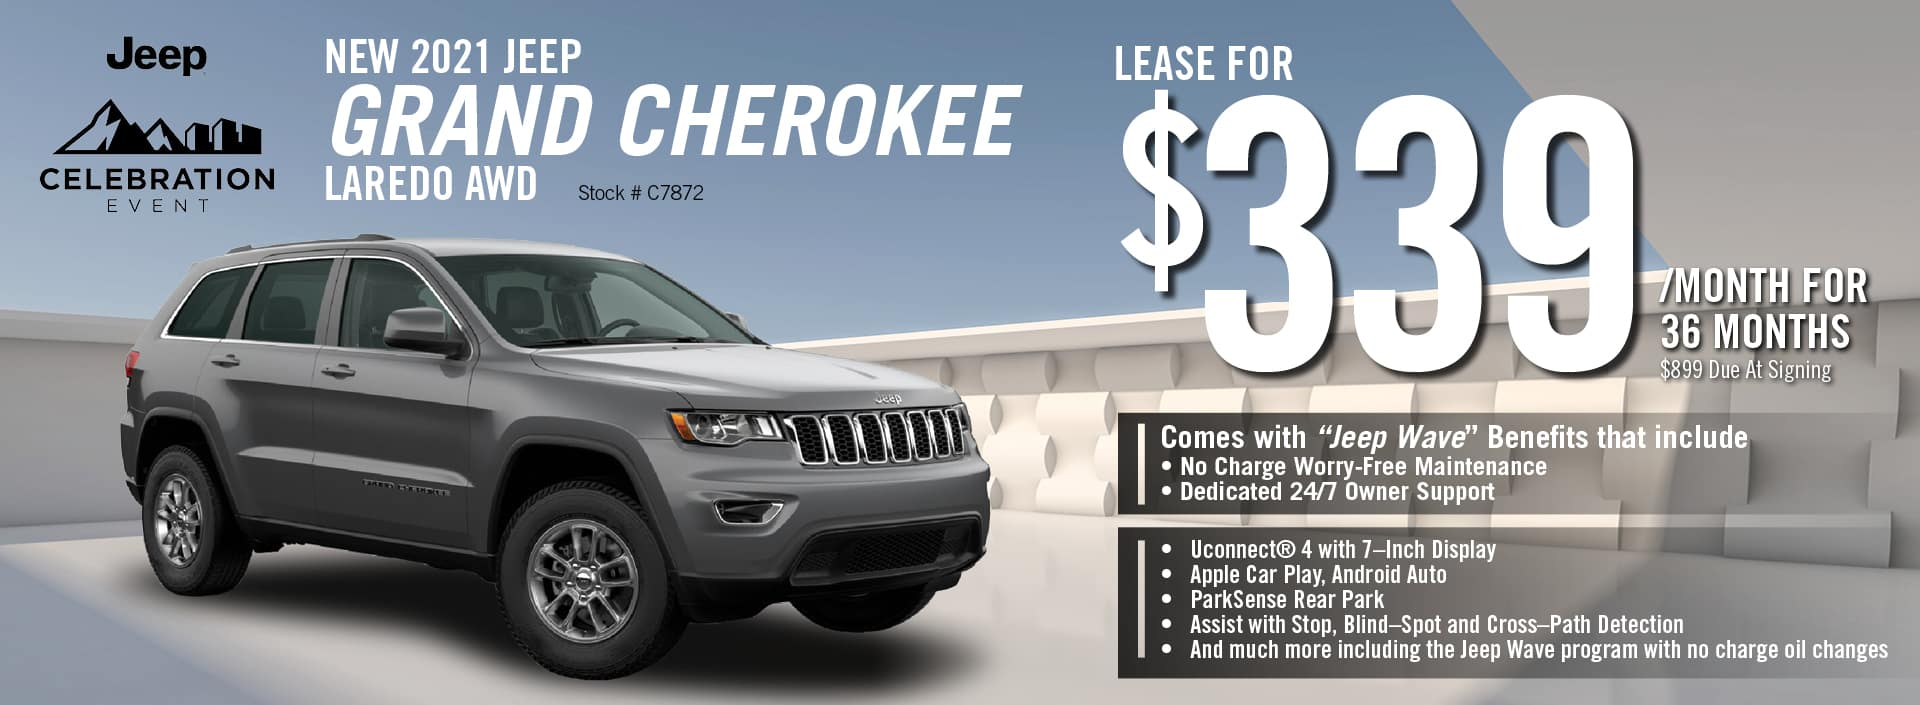 2021 Jeep Grand Cherokee Lease Offer | Barre, VT